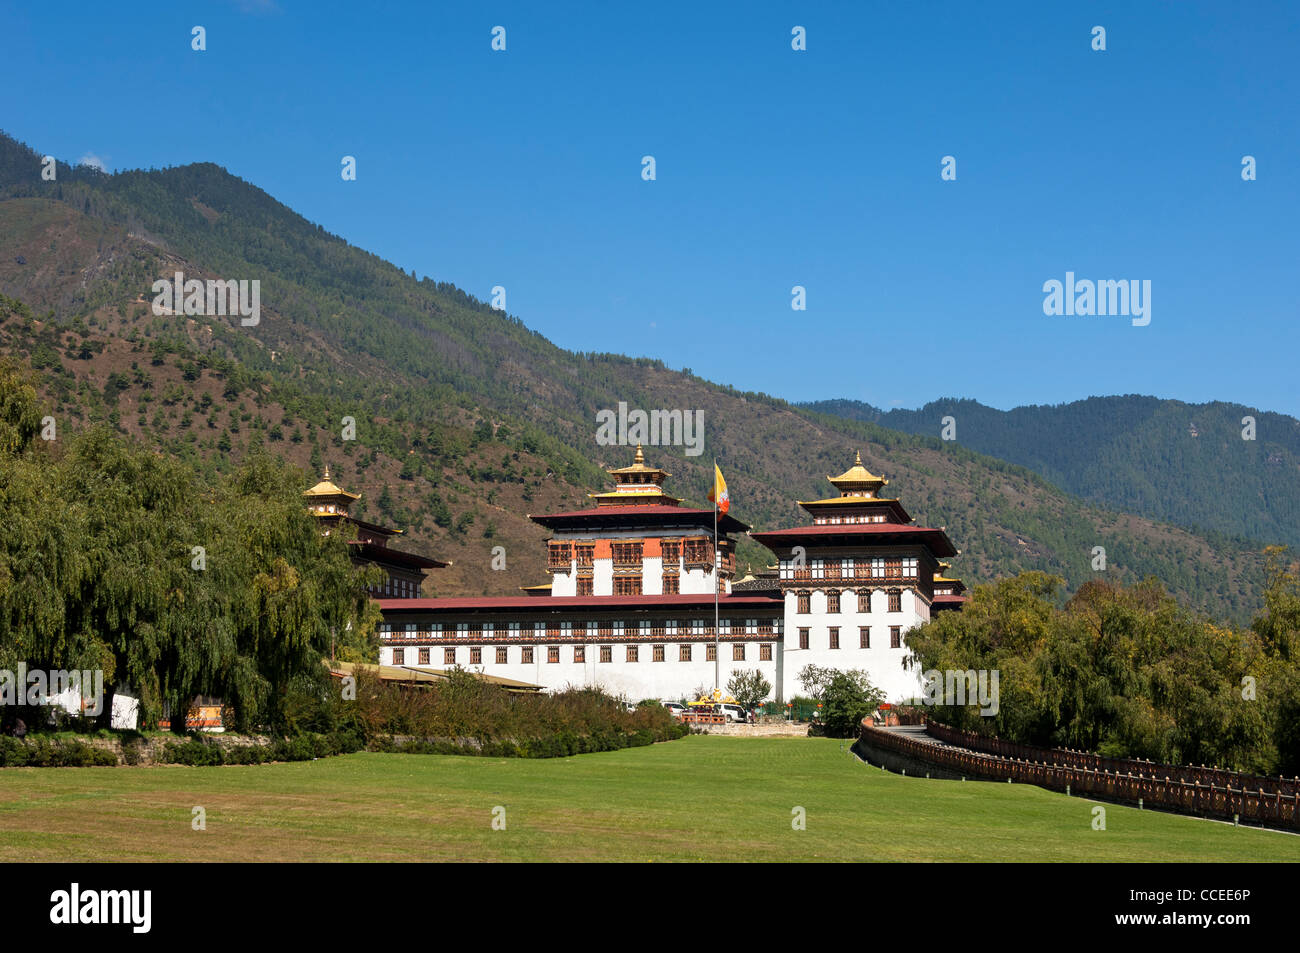 Seat of government Thimphu Dzong or Trashi Chhoe Dzong in the traditional architecural style, Thimphu, Bhutan Stock Photo